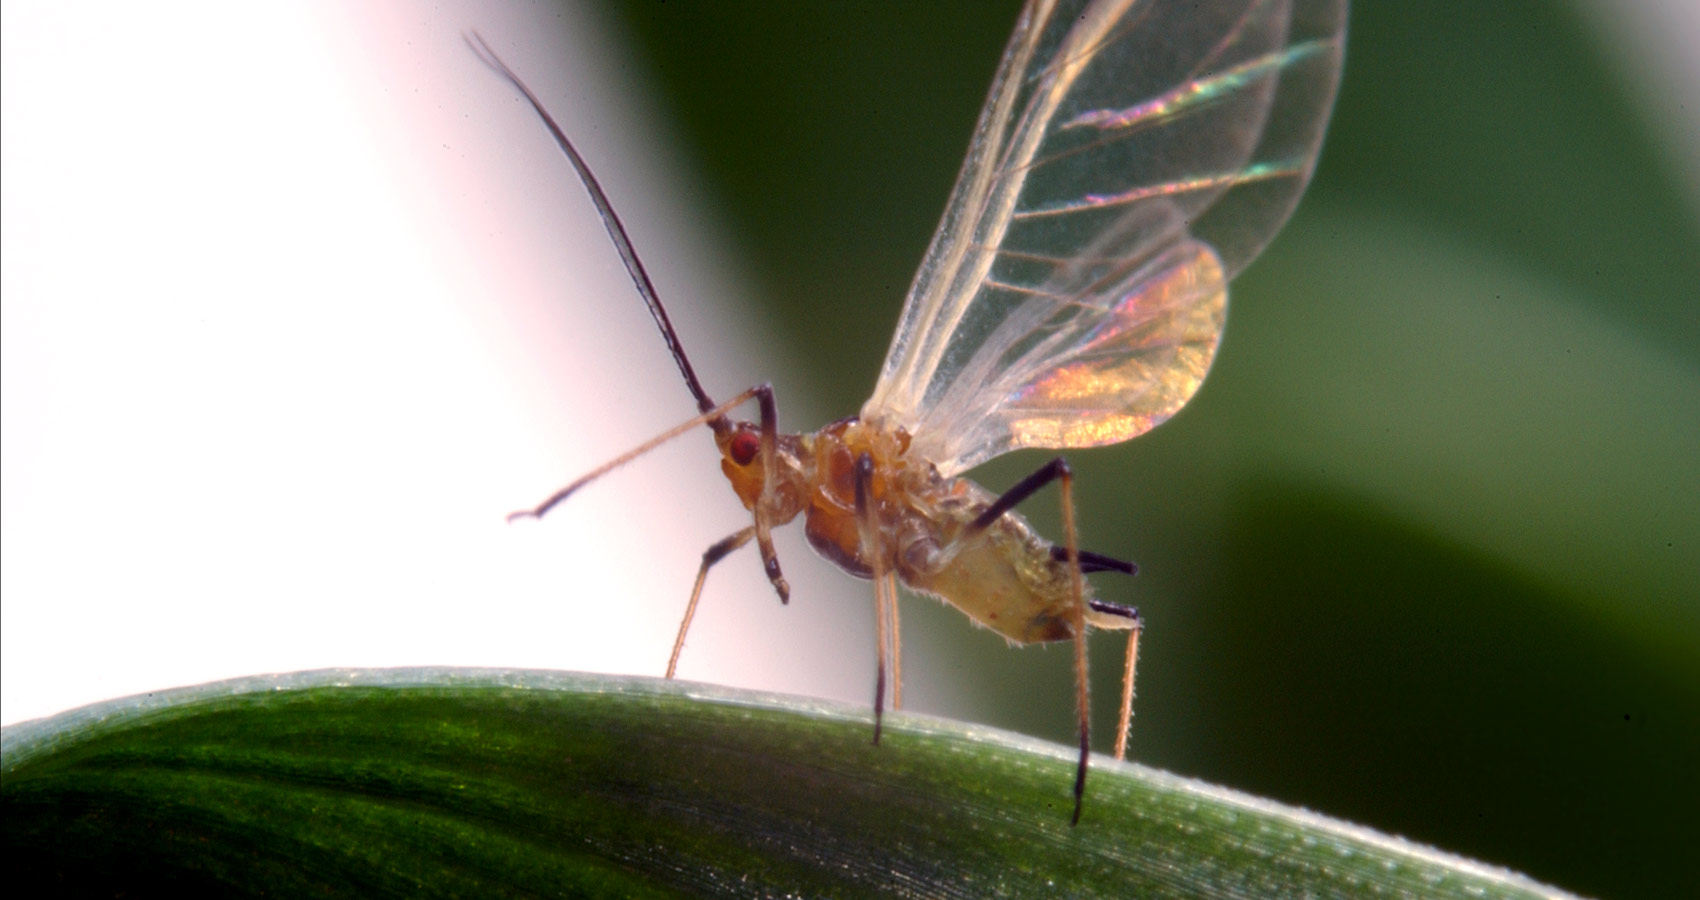 English Grain Aphid (Sitobion avenae) - credit Rothamsted Research